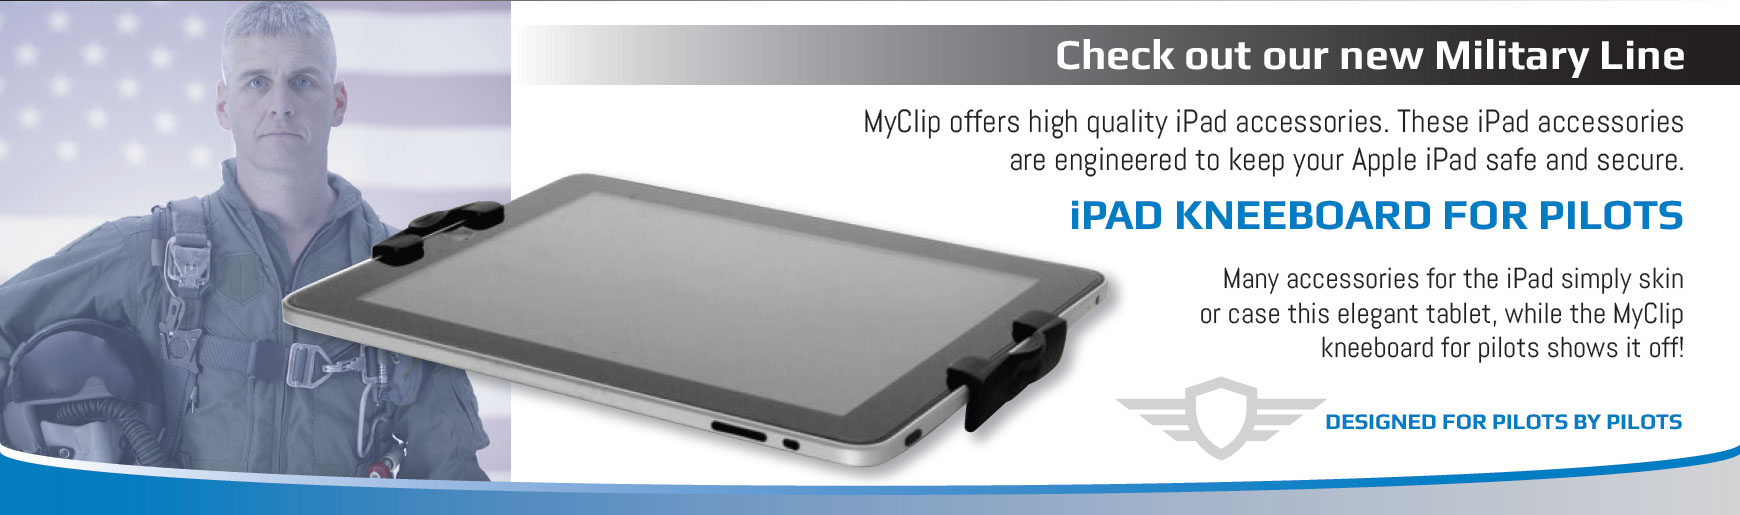 Check out our new Military Line. MyClip offers high quality iPad accessories. These iPad accessories are engineered to keep your Apple iPad safe and secure. iPAD KNEEBOARD FOR PILOTS. Many accessories for the iPad simply skin or case this elegant tablet, while the MyClip  kneeboard for pilots shows it off. Designed for pilots by pilots.